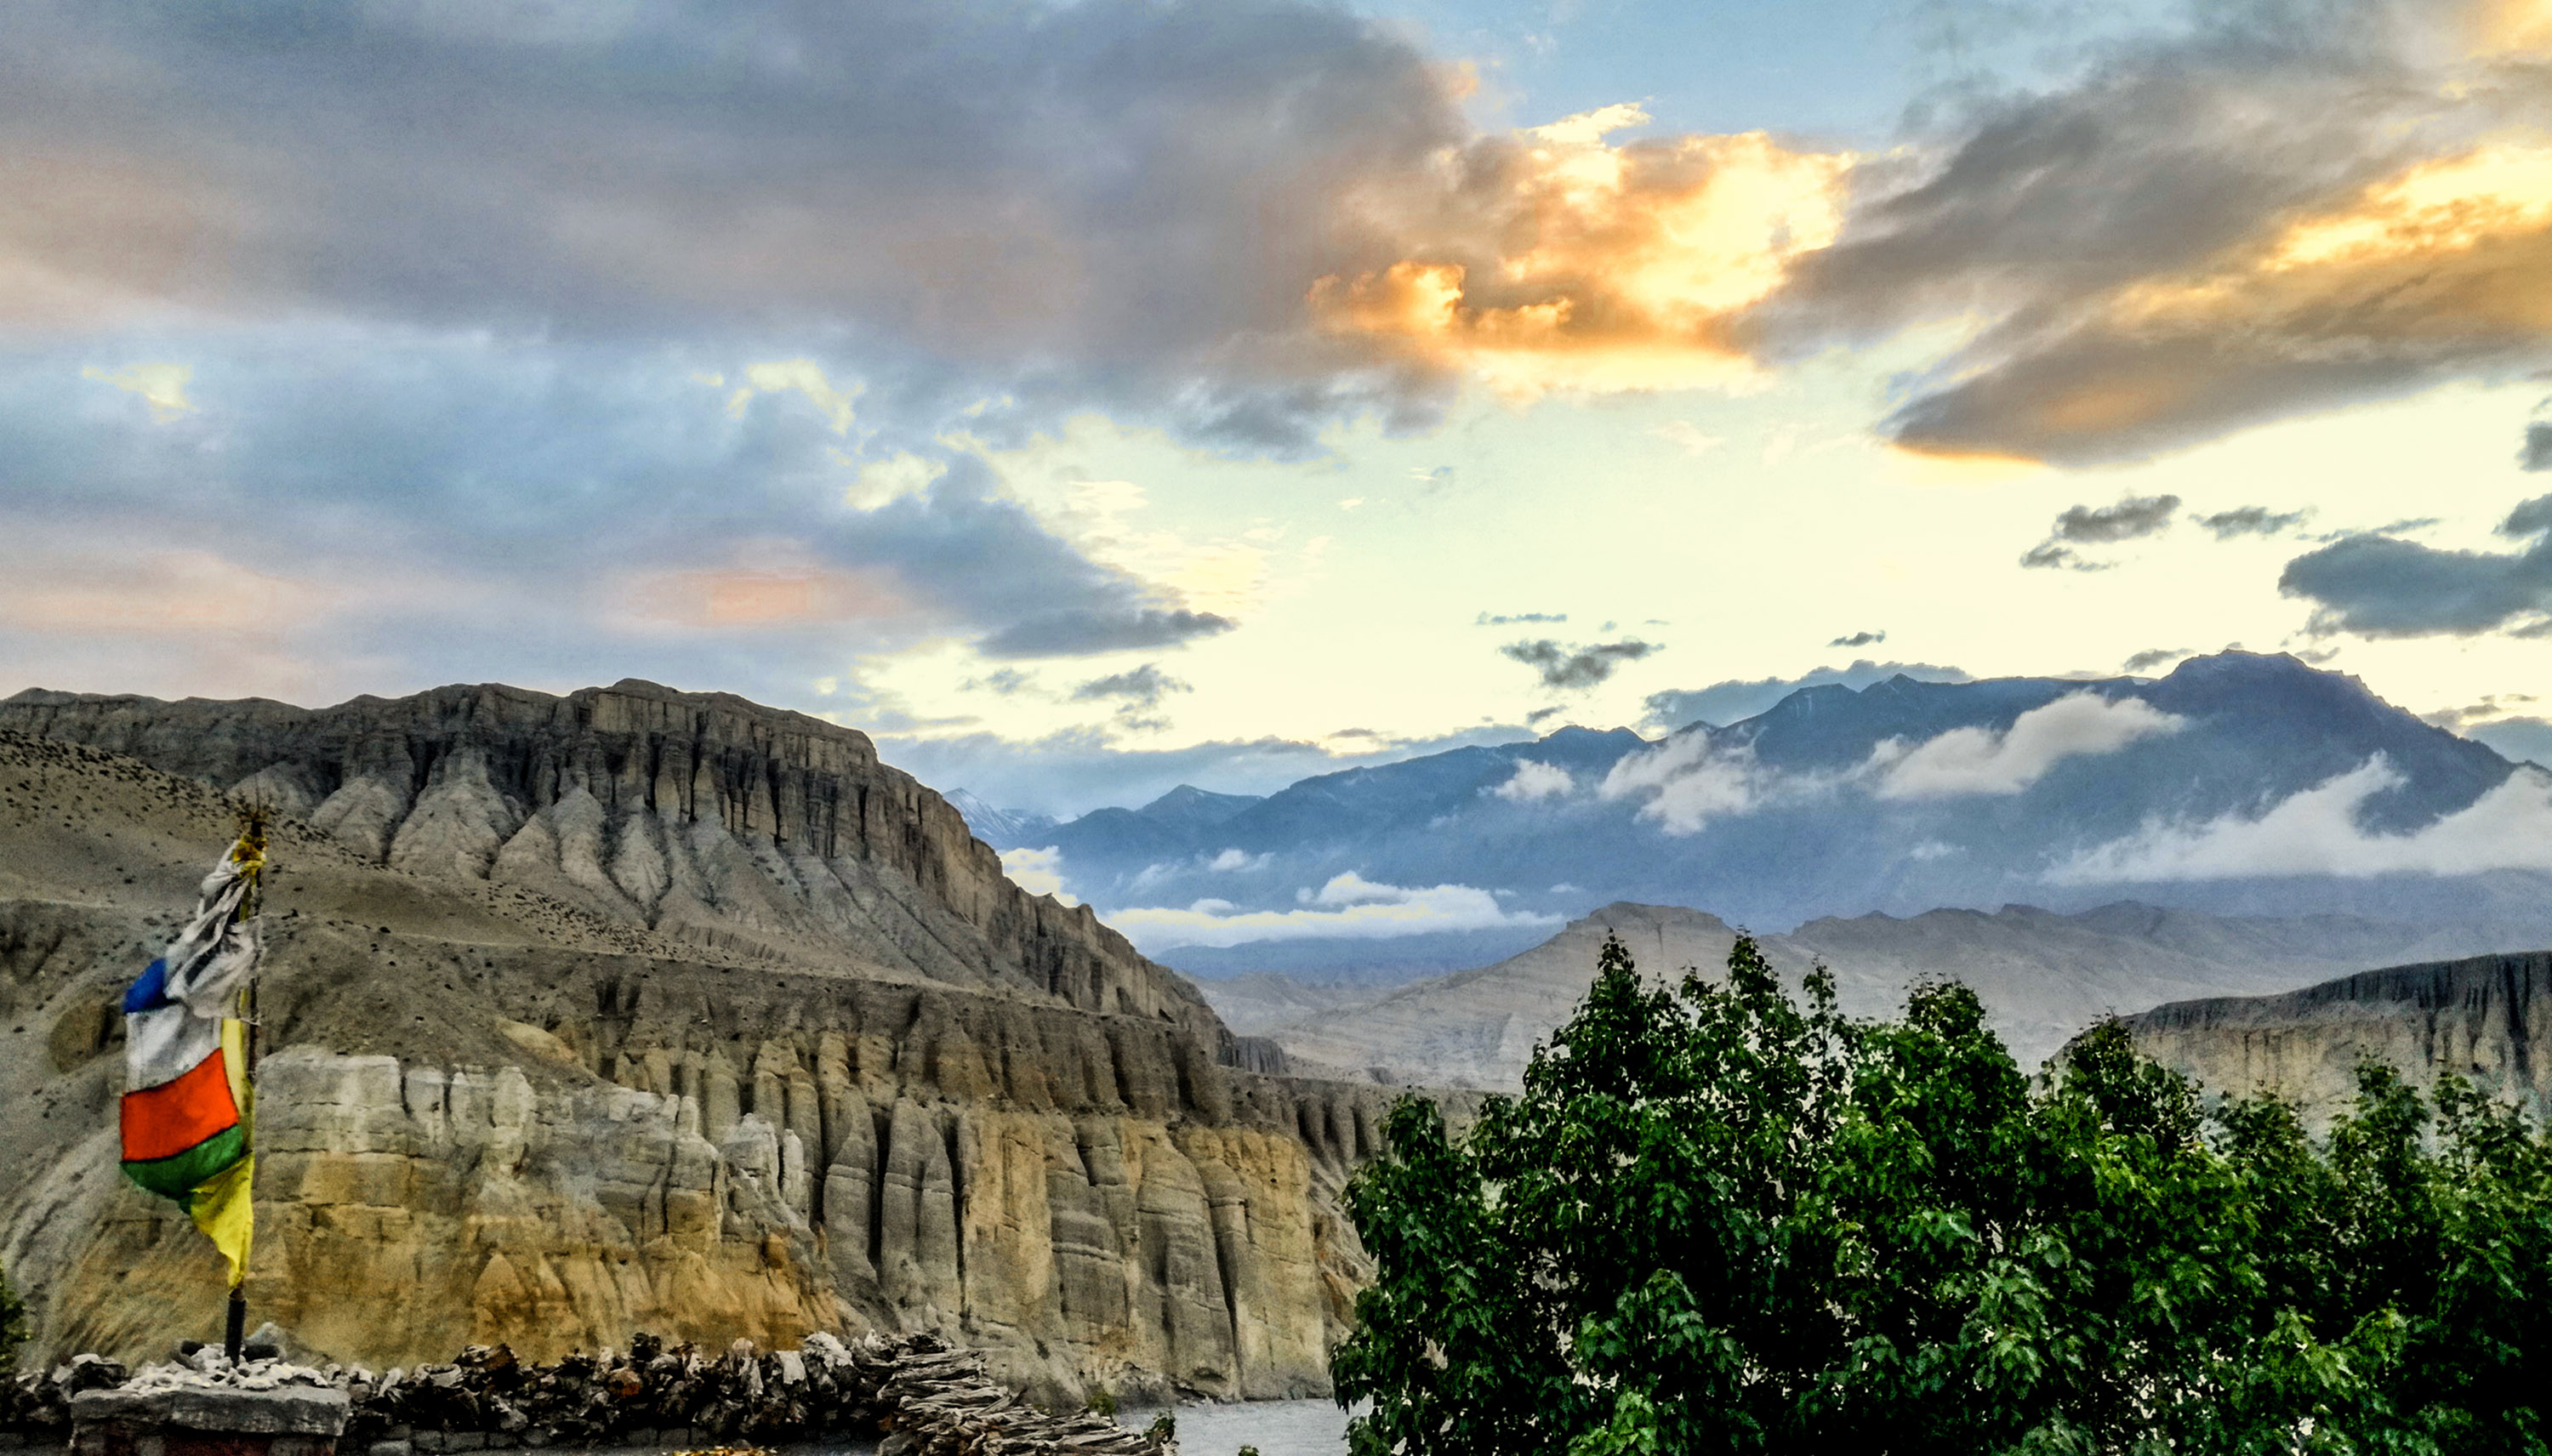 Upper Mustang: Travel to The Hidden Kingdom